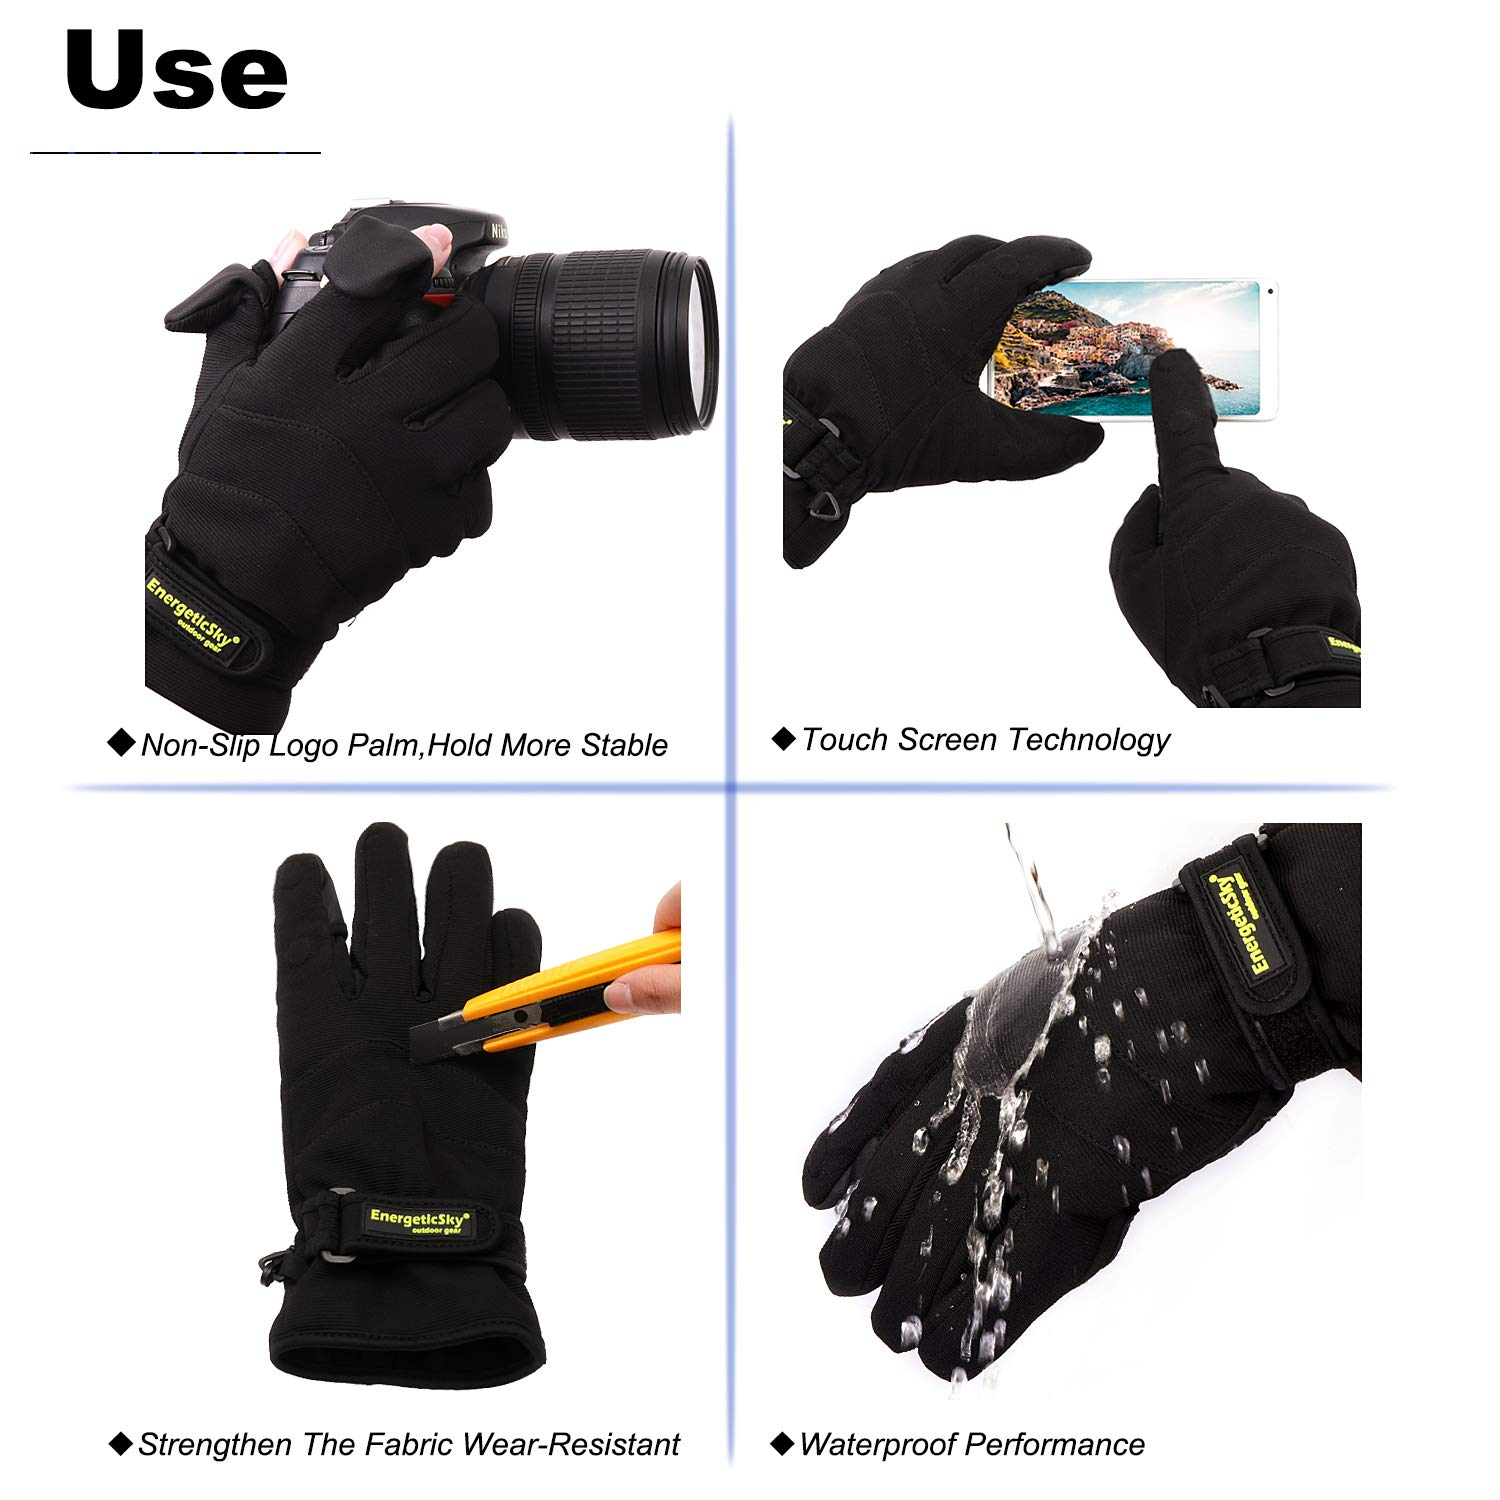 EnergeticSky Waterproof Winter Gloves,3M Thinsulate Ski /& Snowboard Gloves for Men and Women,Touchscreen Gloves for Fishing,Photographing,Hunting Outdoor Activities.